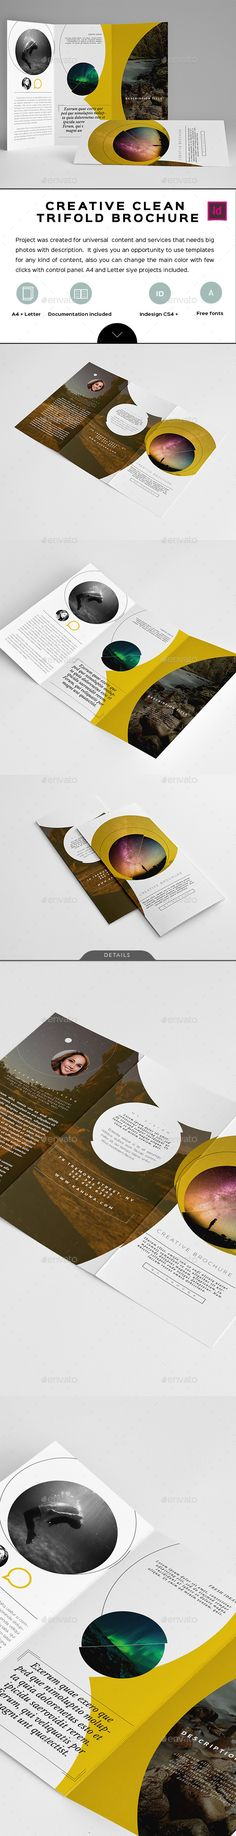 Creative Clean Trifold Brochure Template InDesign INDD. Download here: http://graphicriver.net/item/creative-clean-trifold-brochure/14737762?ref=ksioks